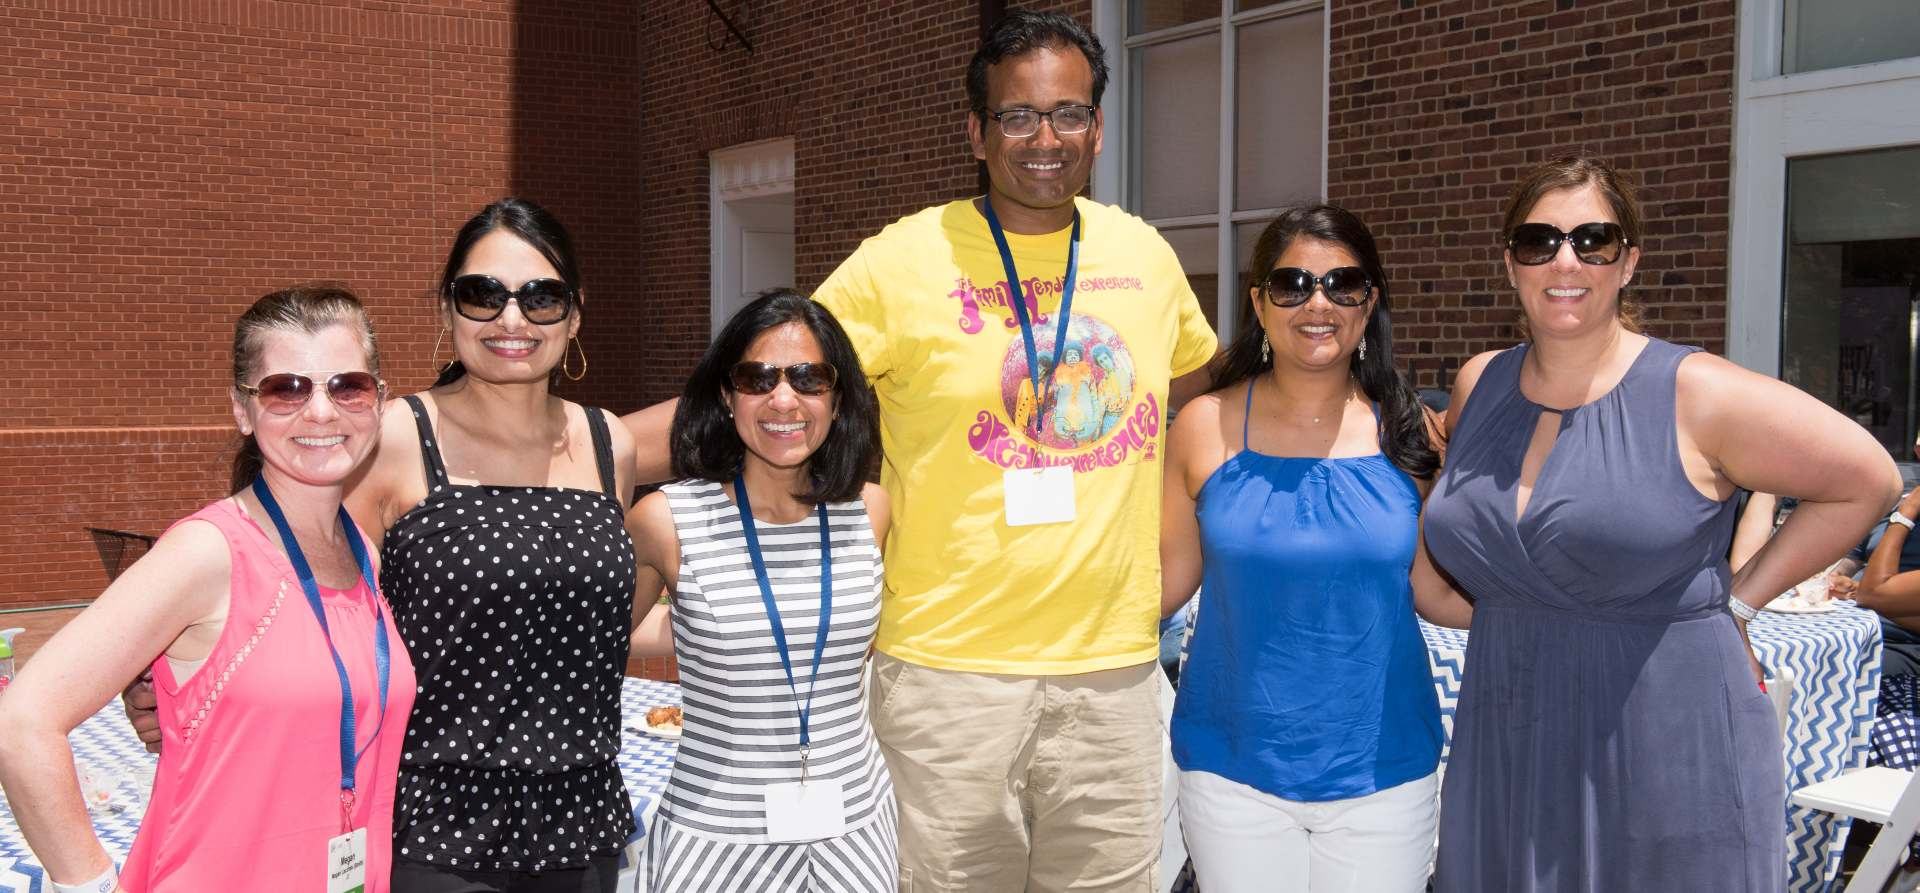 GW Law Alumni at the Family-Friendly BBQ during Reunion Weekend 2017